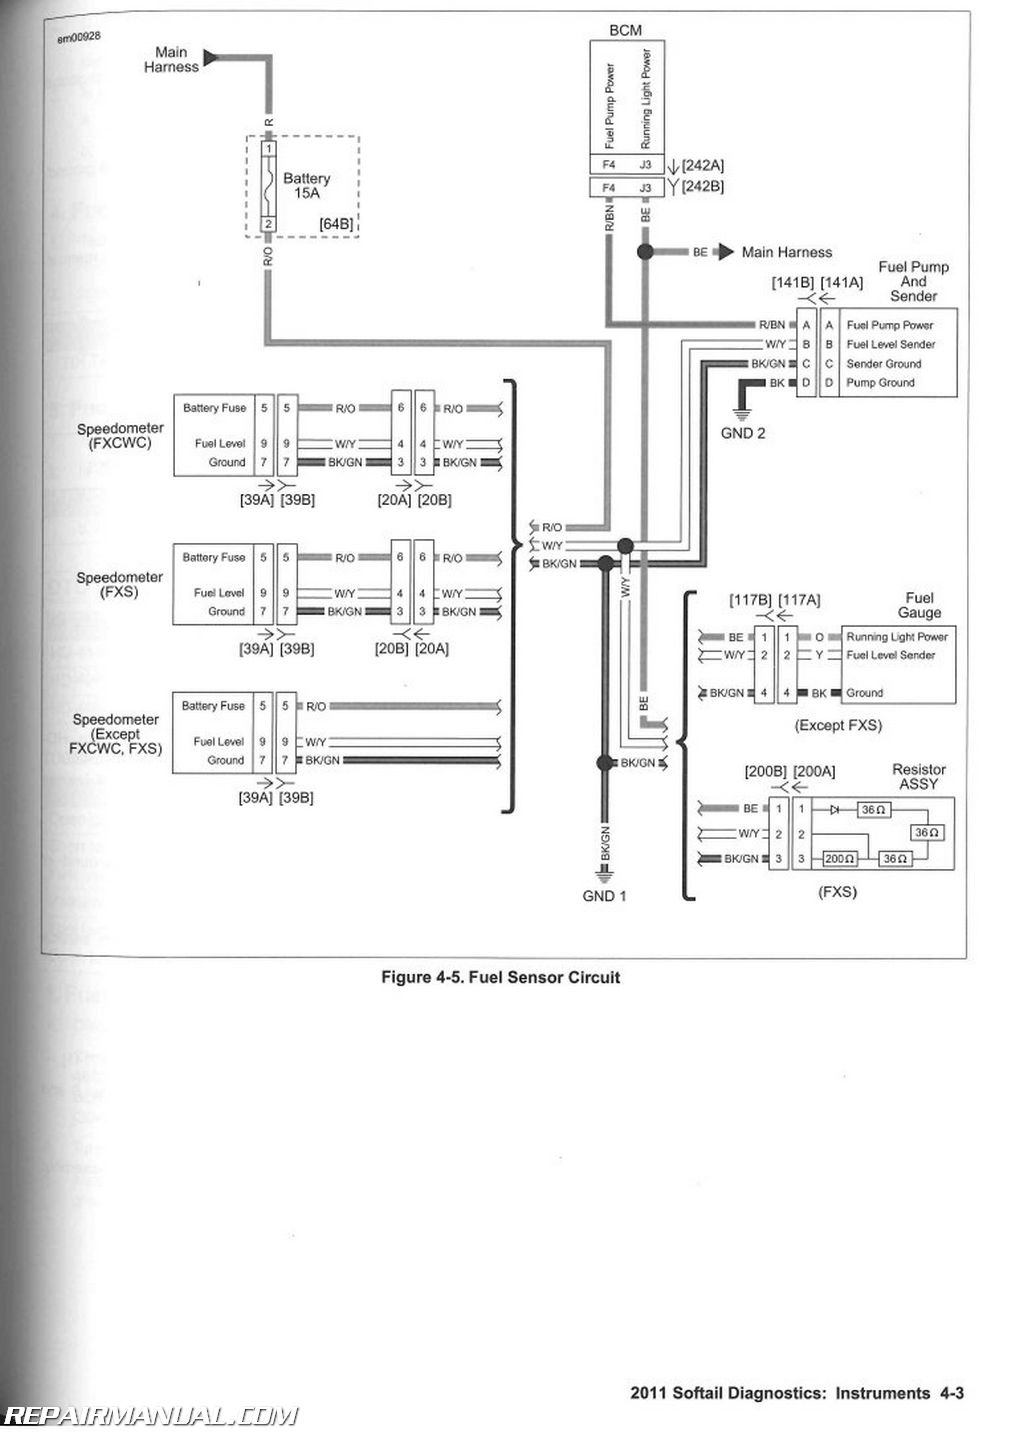 Wiring Diagram Harley Davidson Road King